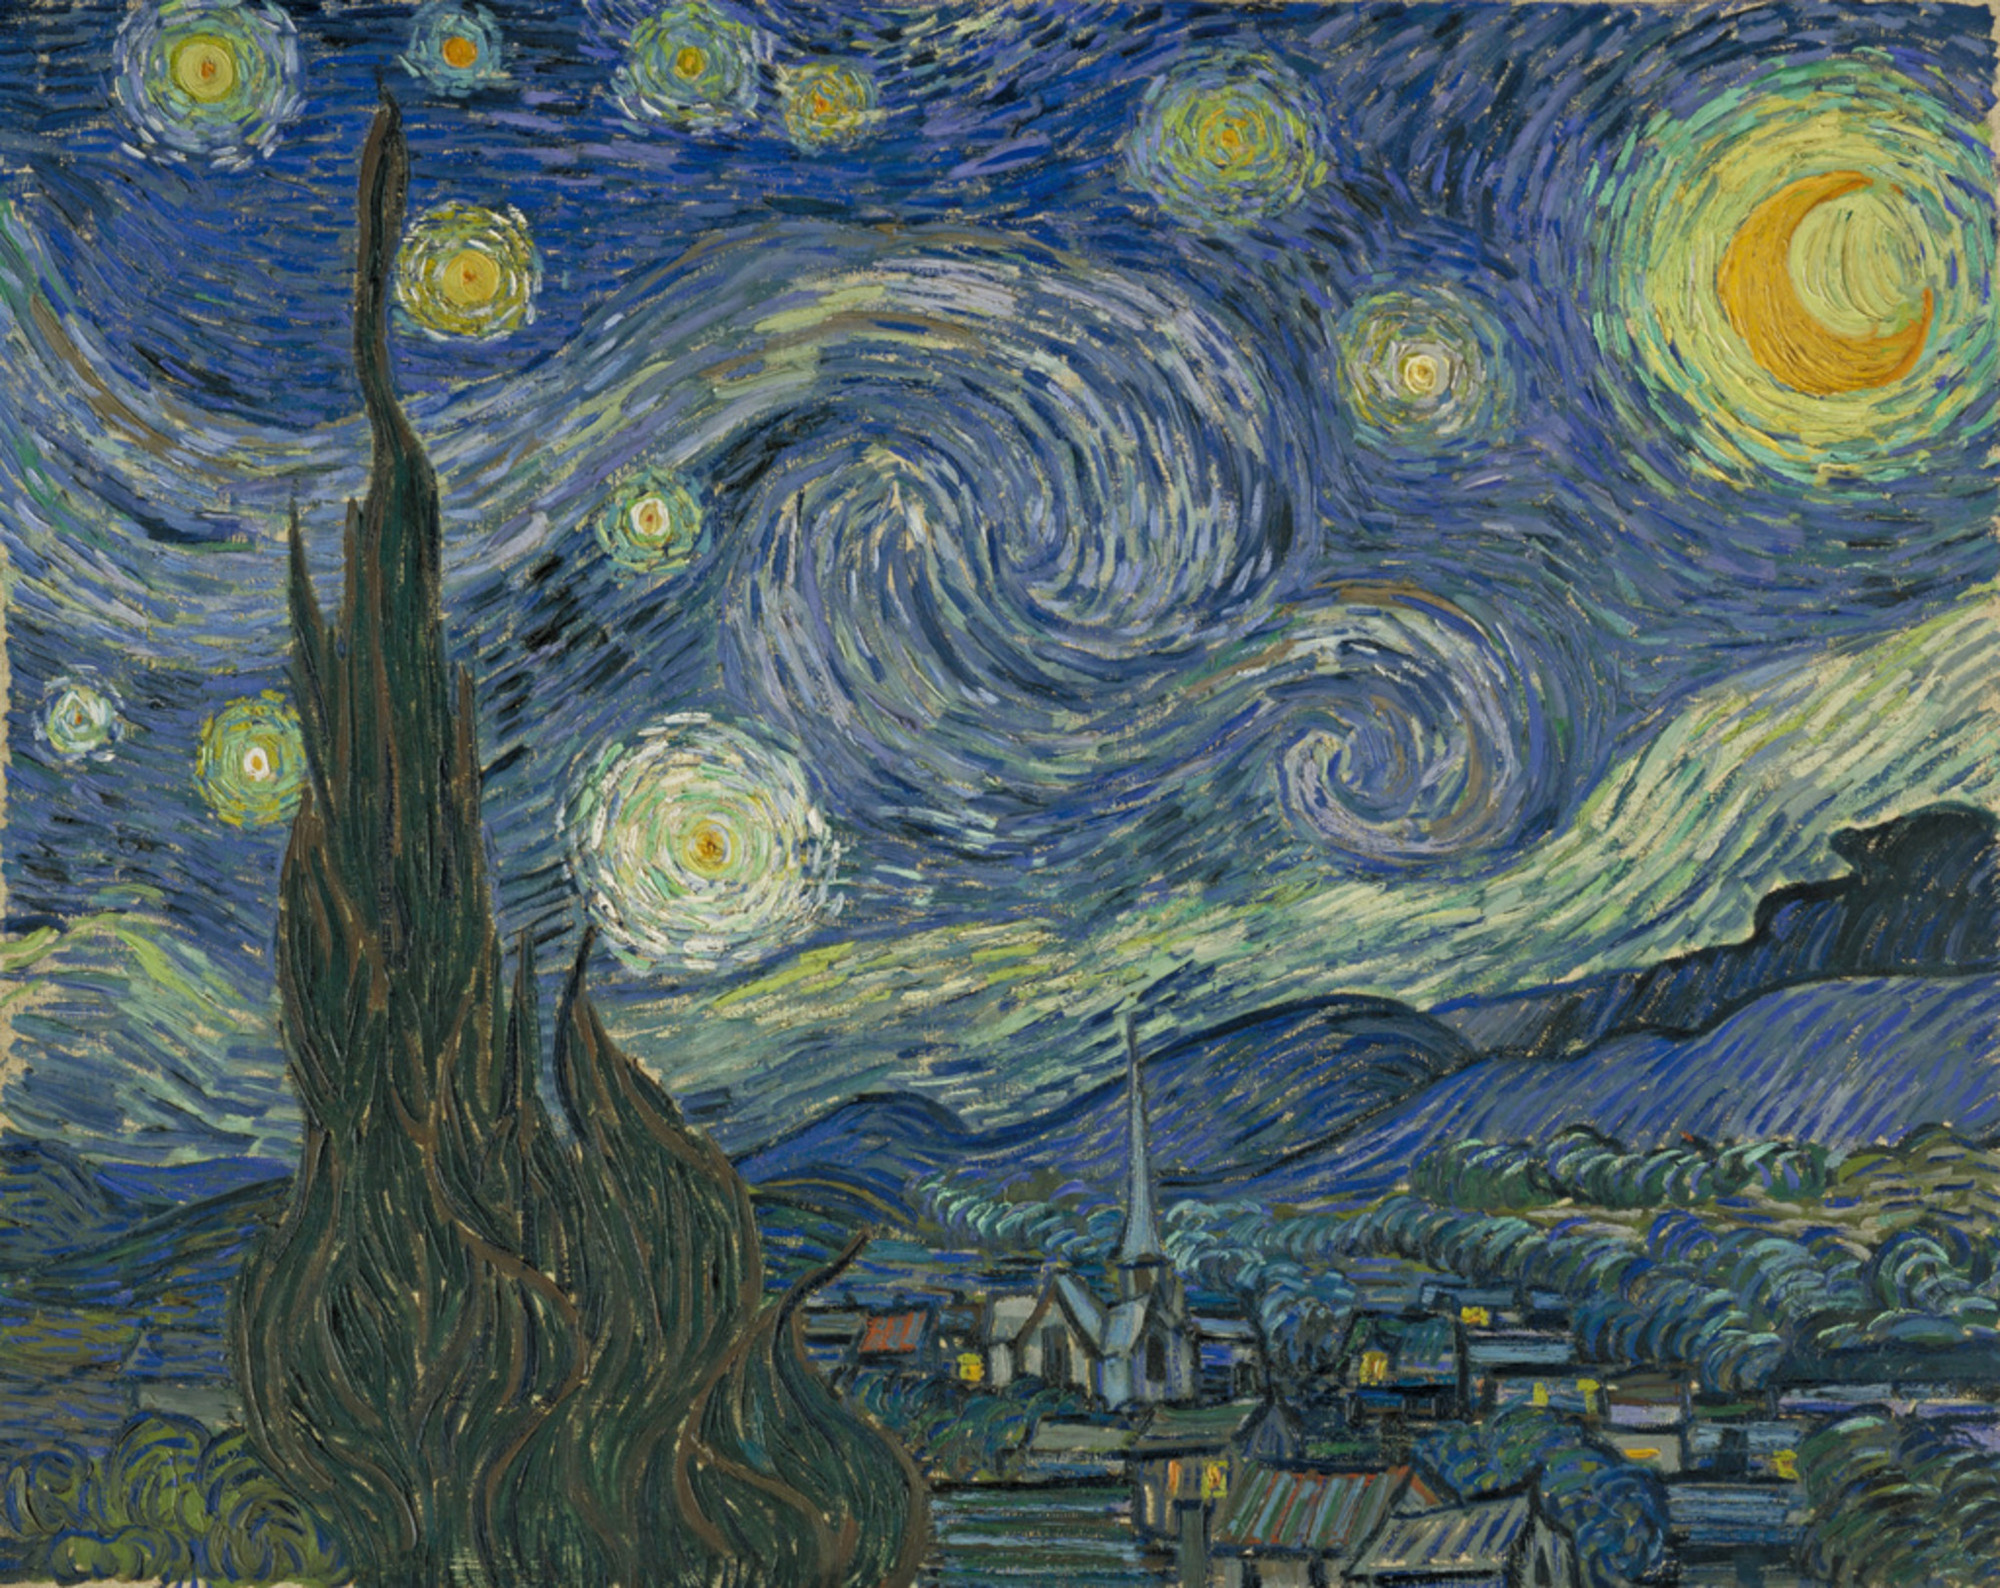 "Vincent van Gogh. The Starry Night. 1889. Oil on canvas, 29 x 36 1/4"" (73.7 x 92.1 cm). The Museum of Modern Art, New York. Acquired through the Lillie P. Bliss Bequest"